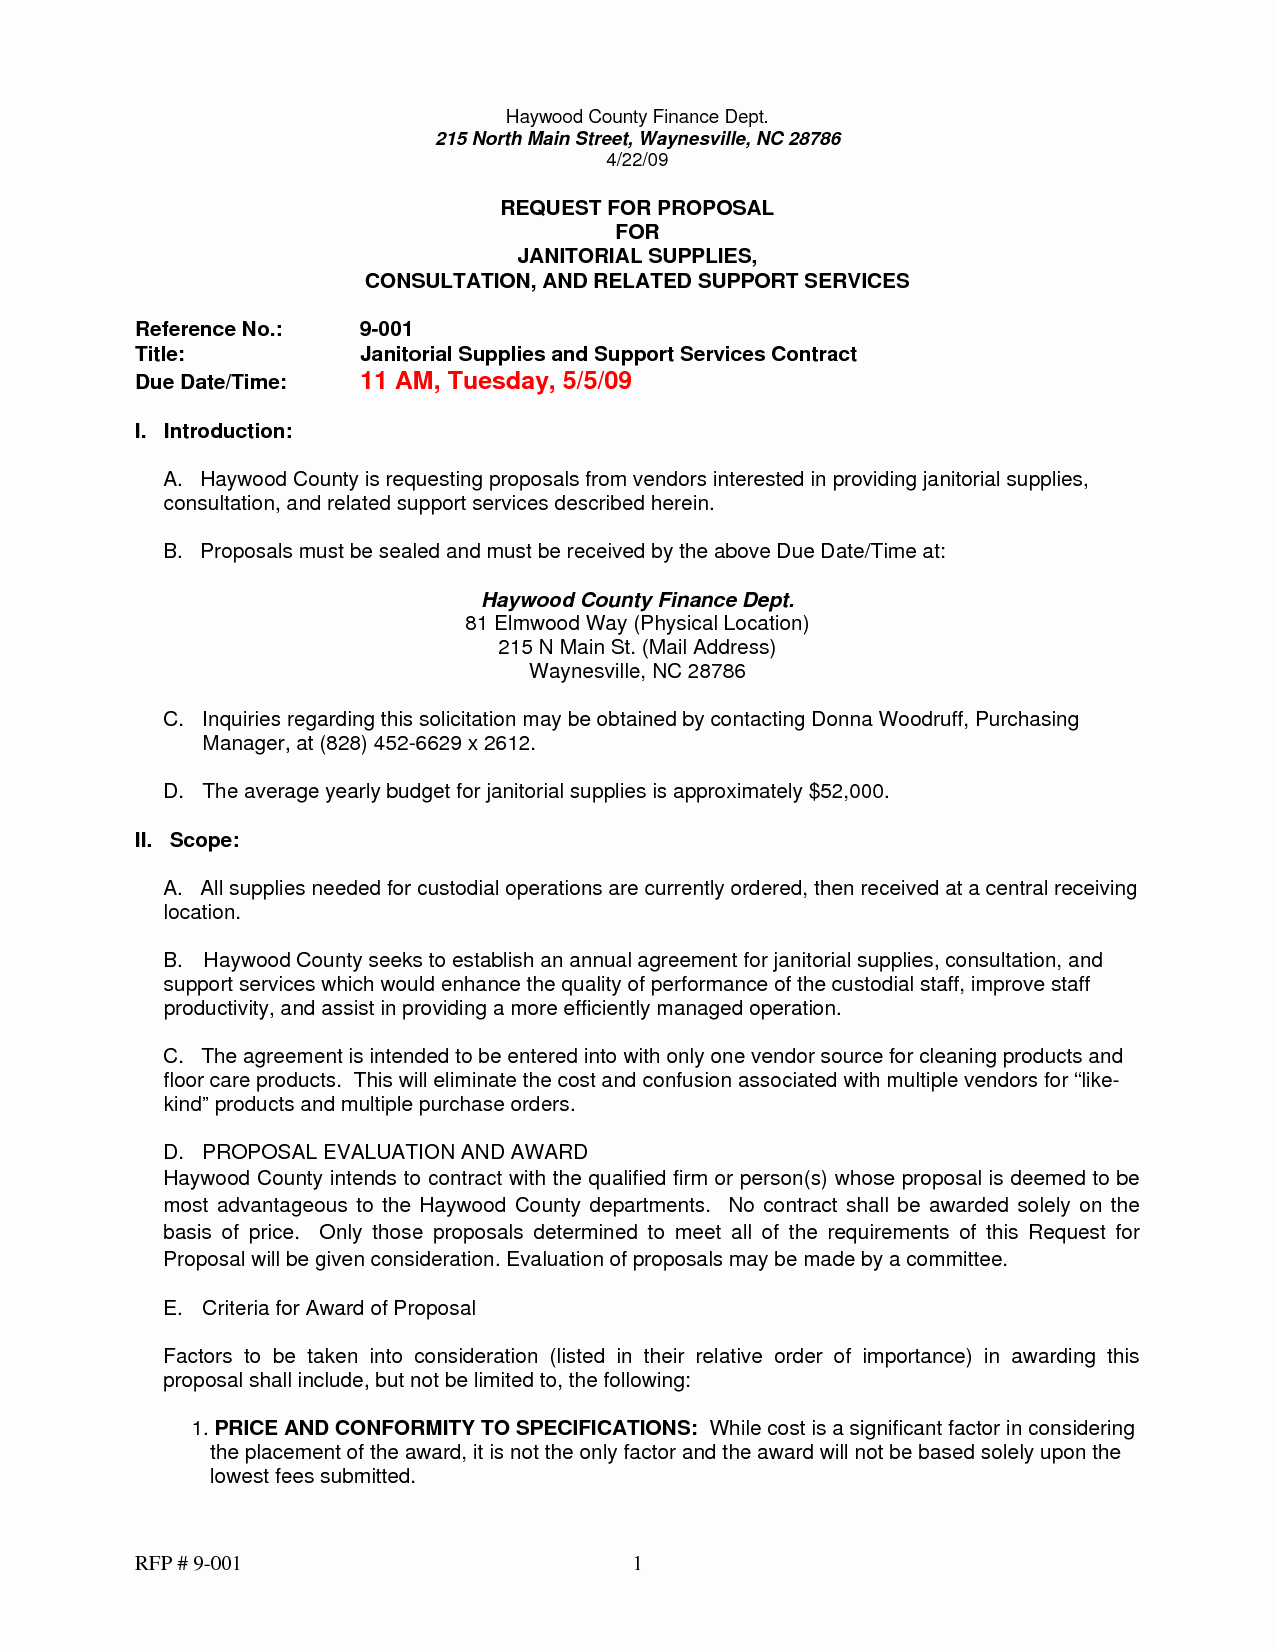 Example Of A Bid Proposal Beautiful Best S Of Request for Proposal Letter Example